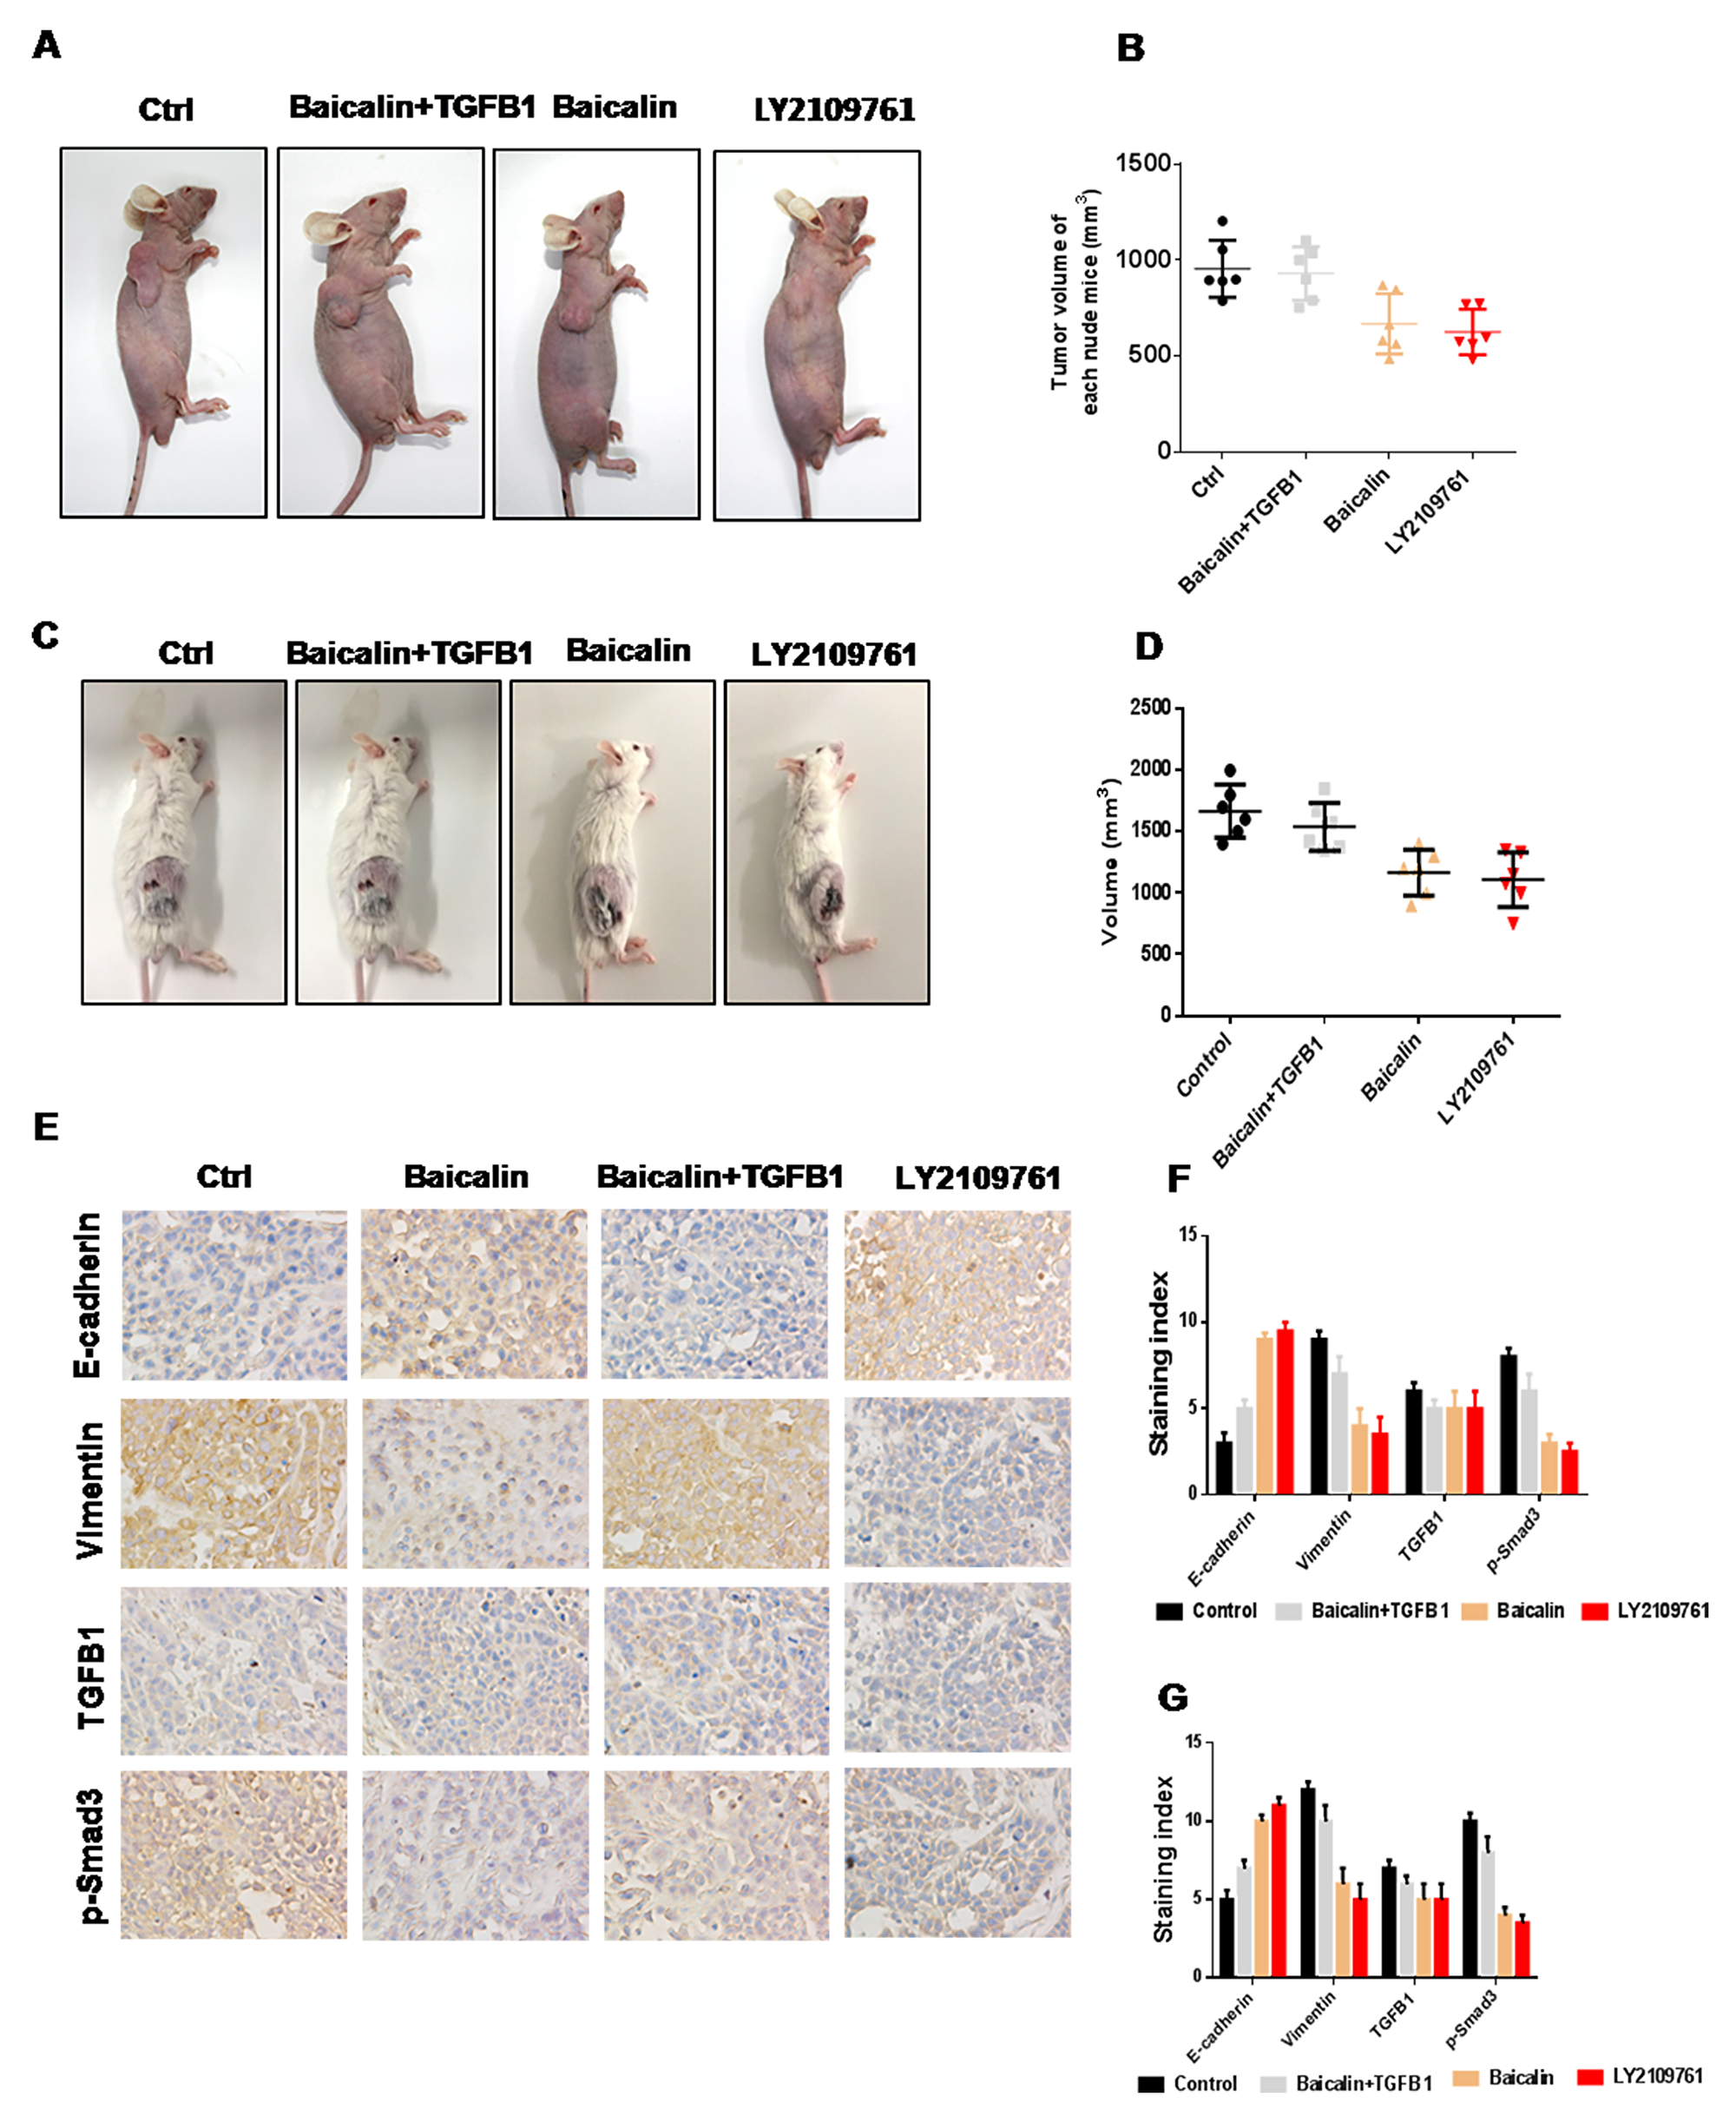 Baicalin suppressed the metastasis of breast cancer in vivo.